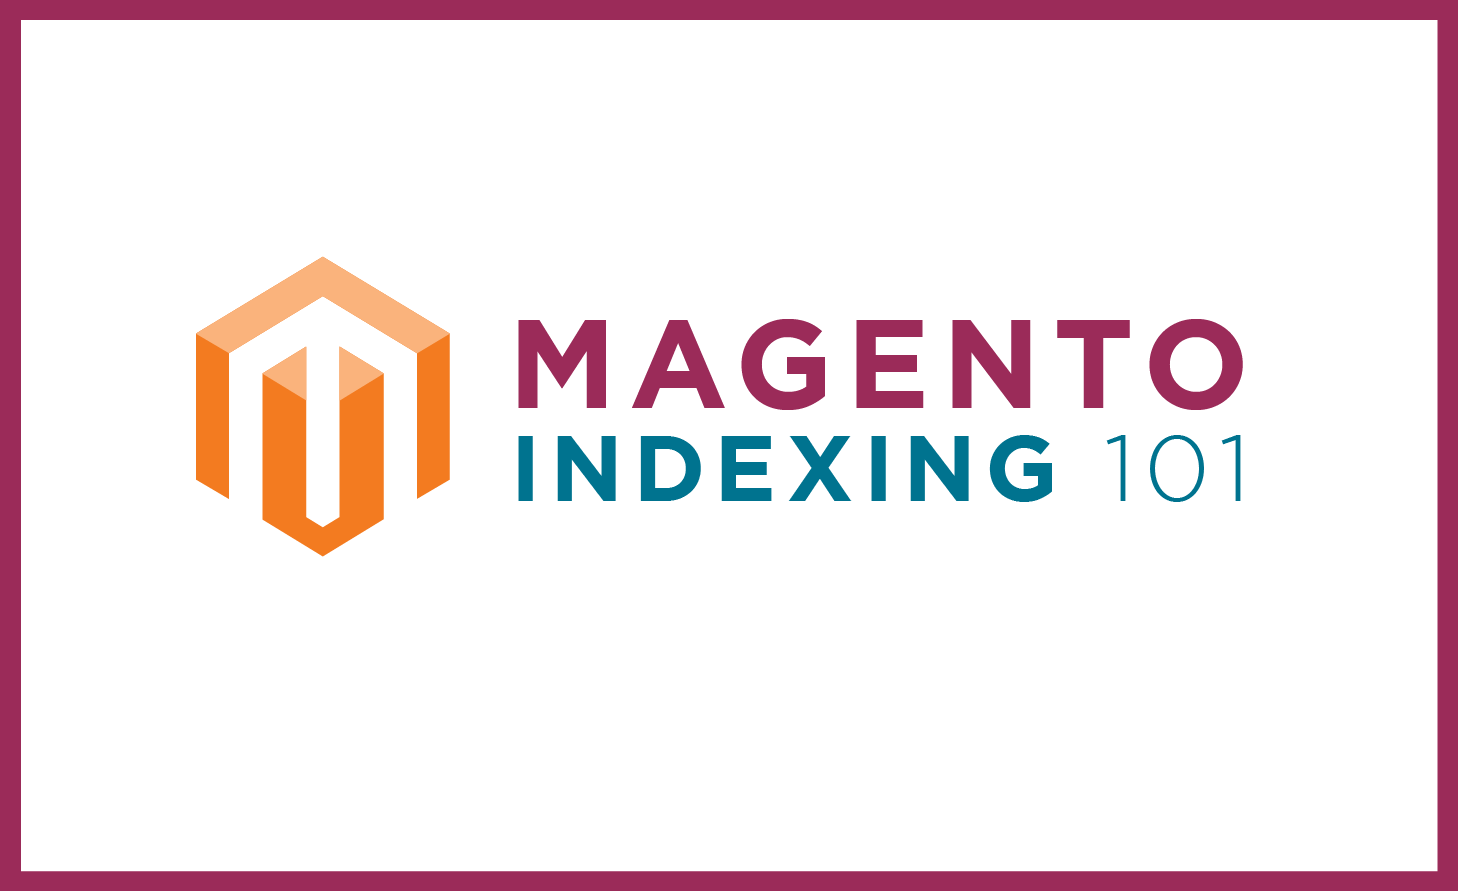 magento-indexing-101-linkedin